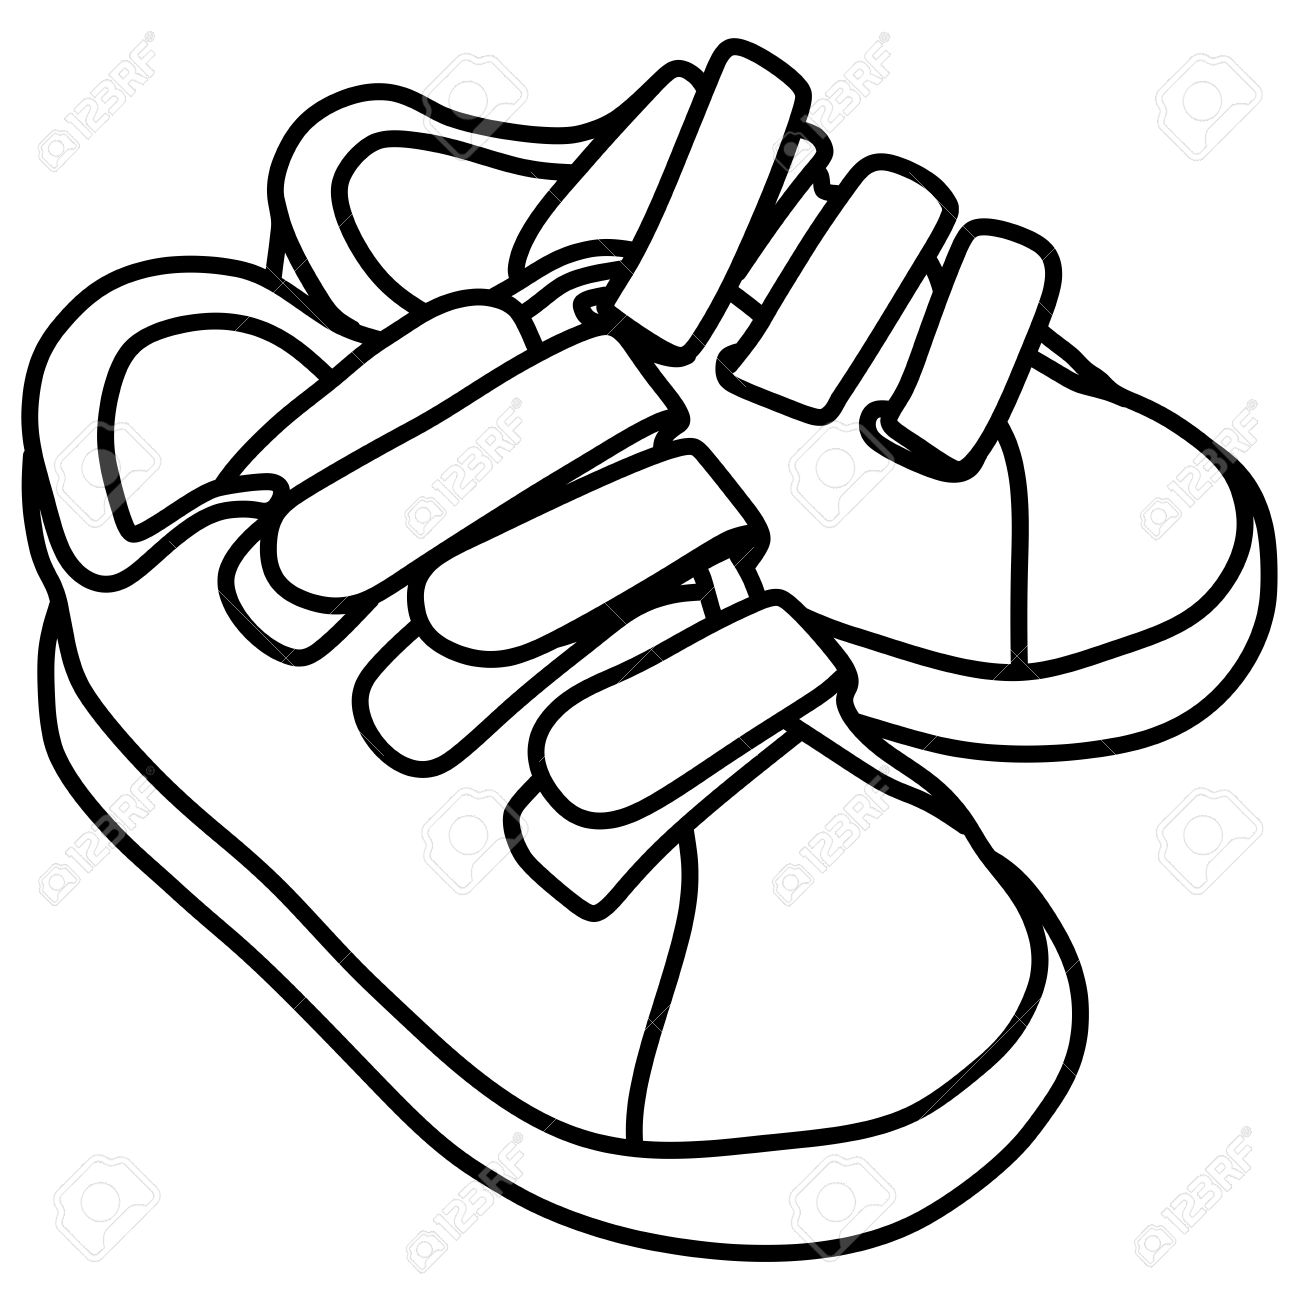 1300x1300 Tying Sports Shoes, Baby, Child Royalty Free Cliparts, Vectors